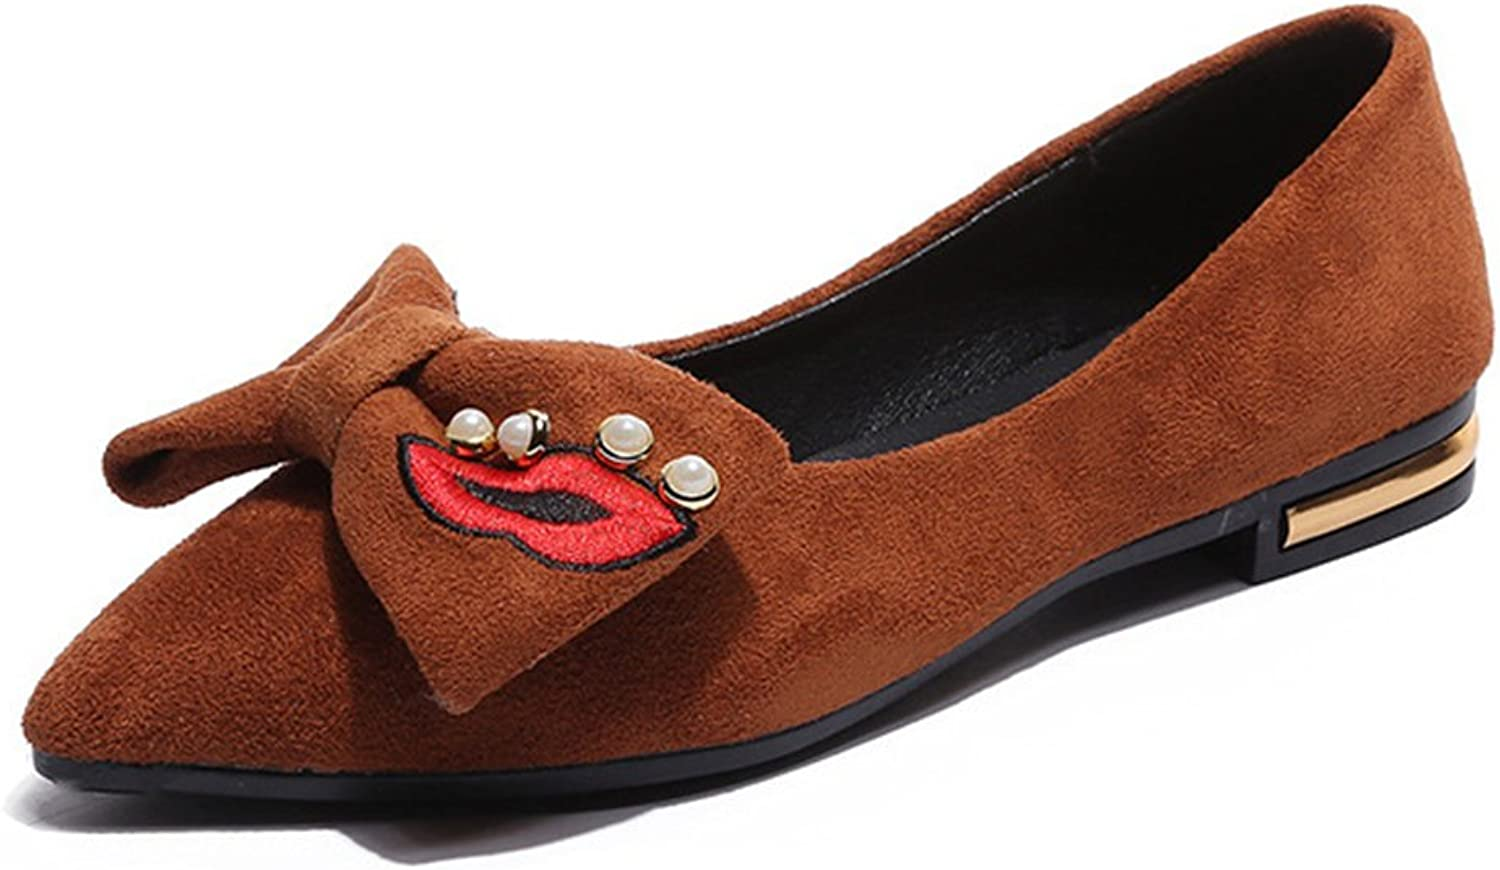 Btrada Women's CZ Bowknot Loafers Penny shoes - Sexy Pointed Toe Red Lip Slip On Flat Dress shoes